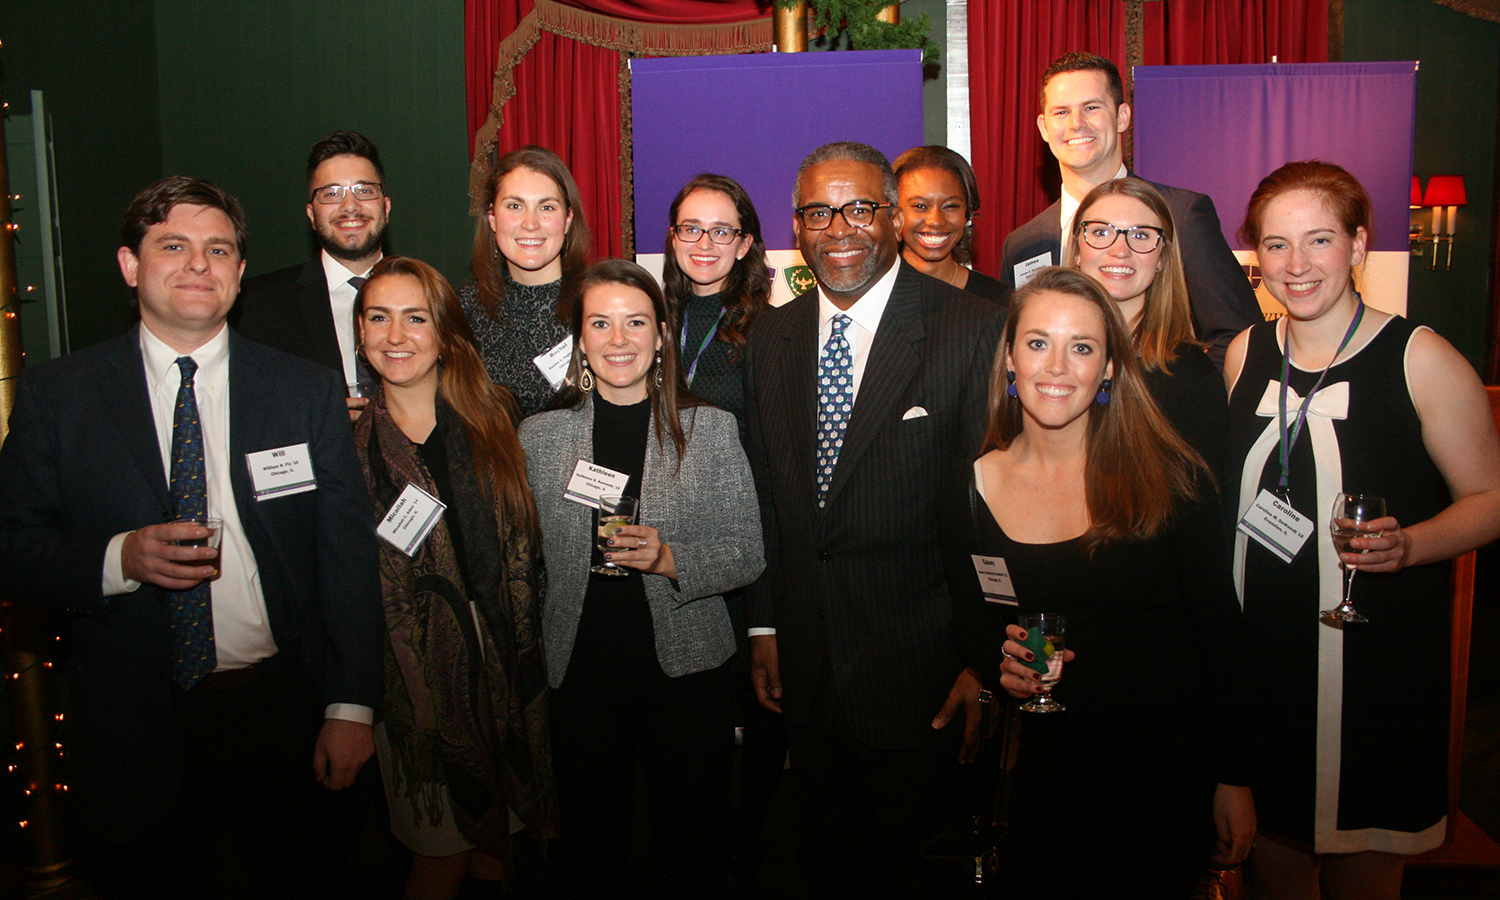 Alums gather with President Gregory J. Vincent '83 during the HWS Holiday gathering in Chicago, IL.